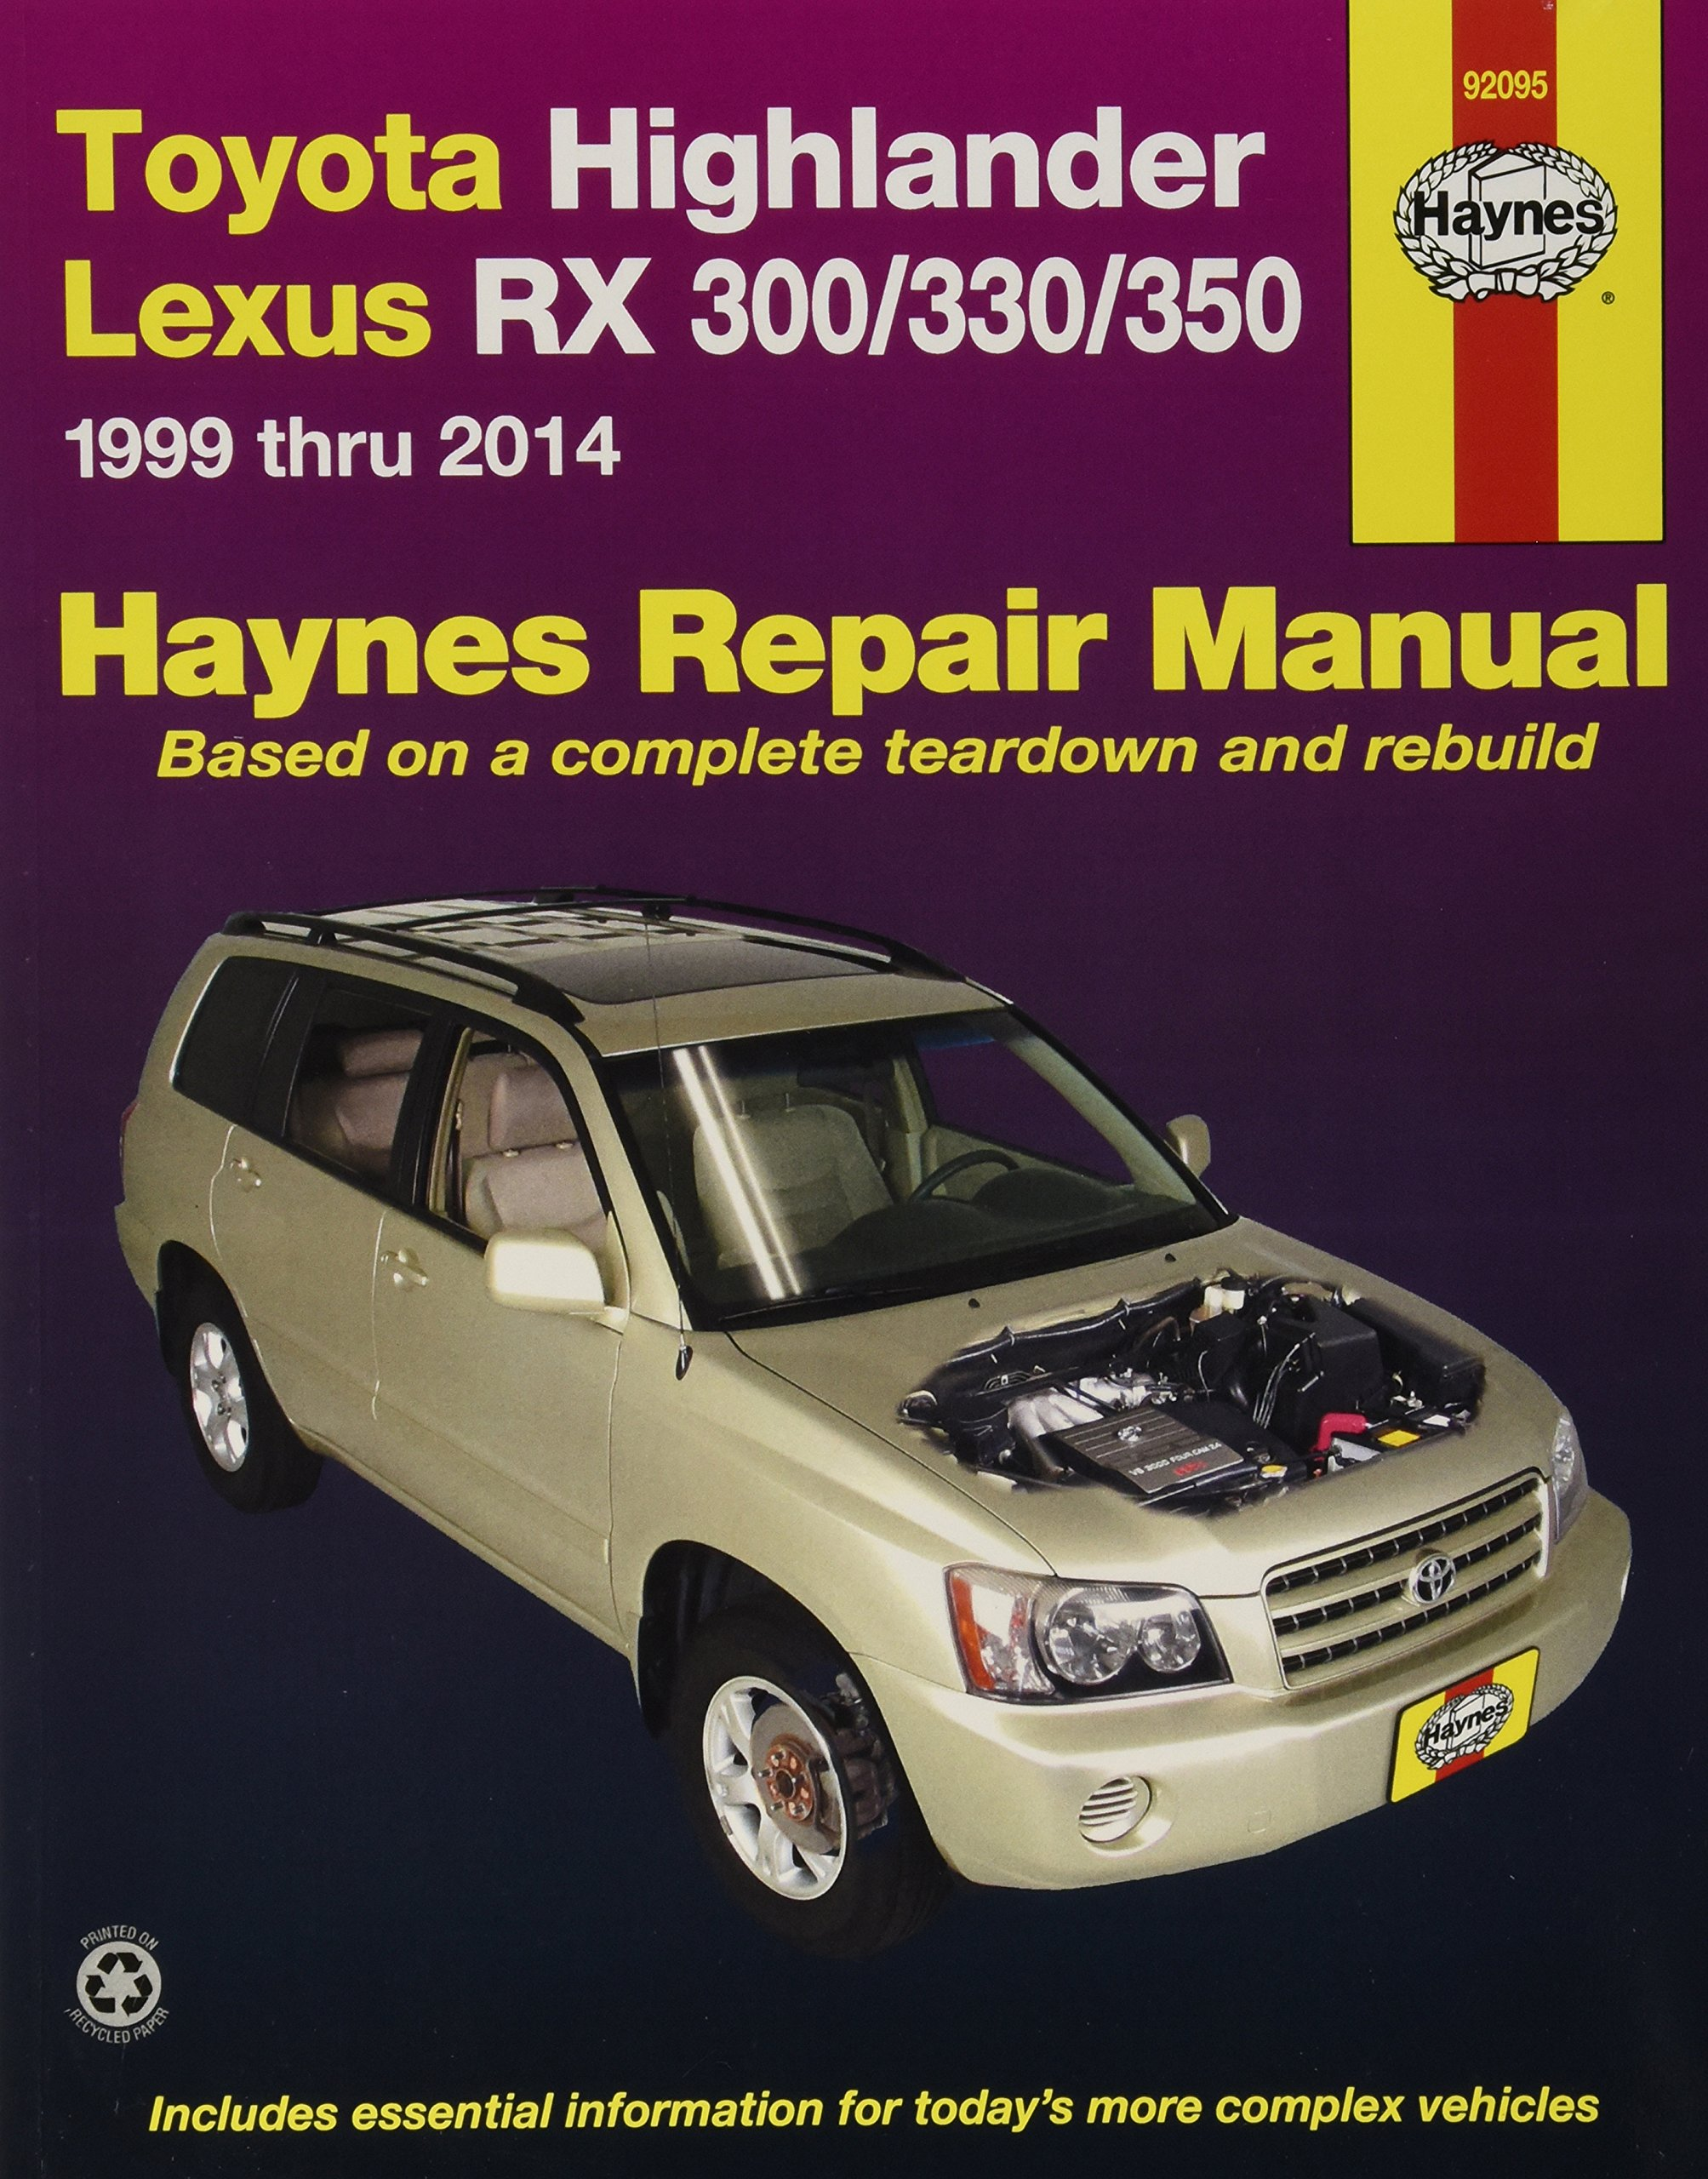 Haynes Repair Manual:Toyota Highlander Lexus RX 300/330 1999 thru 2007:  0038345920950: Amazon.com: Books